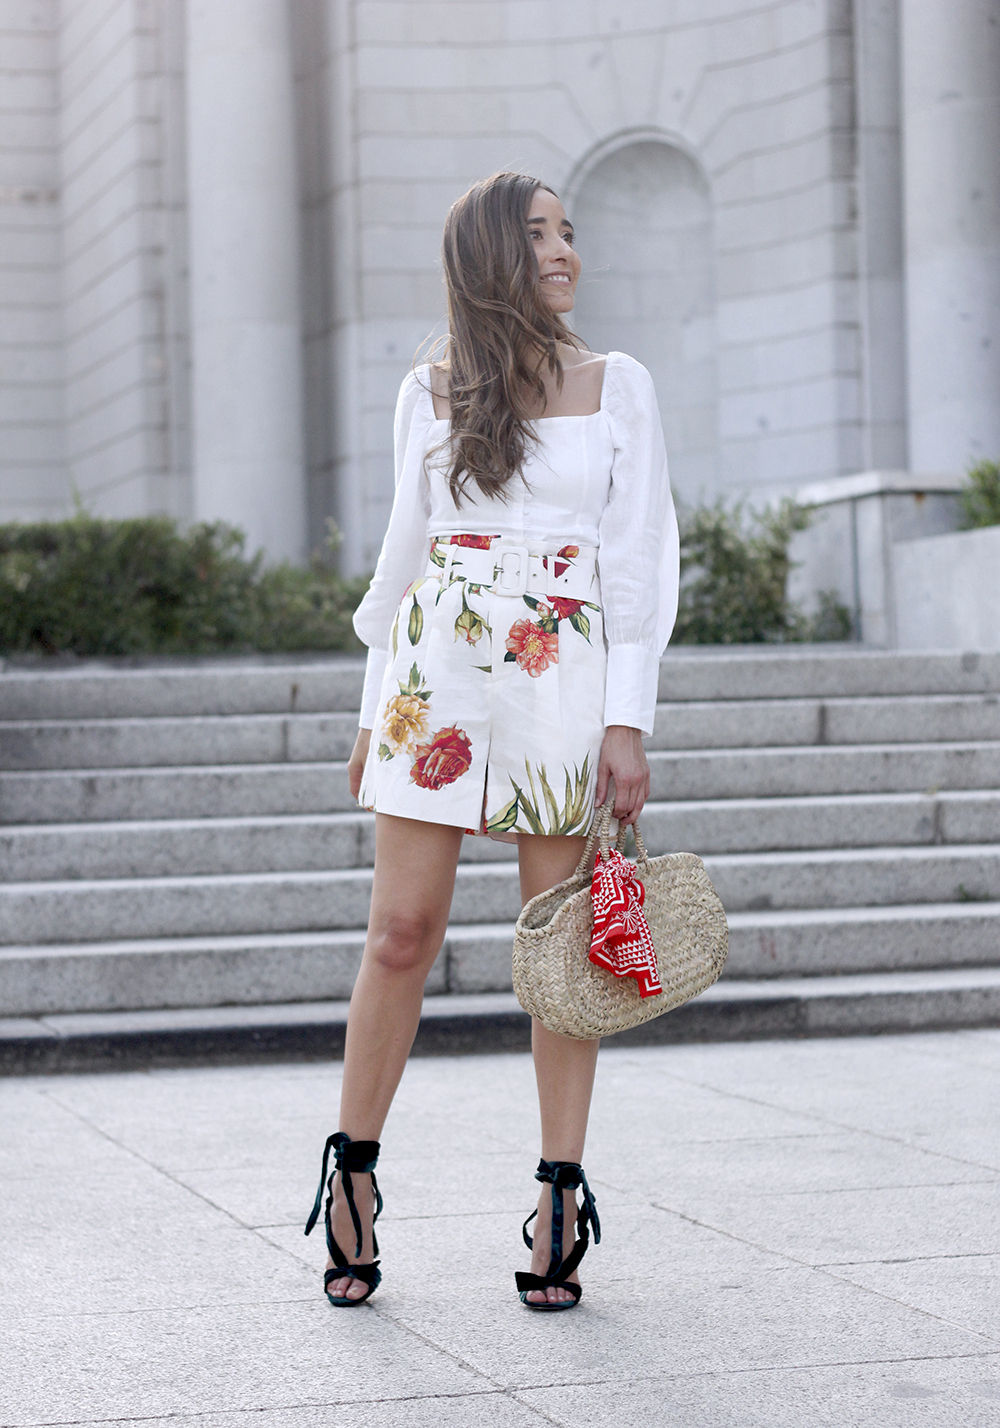 floral print shorts linnen top suede heels street style summer outfit 20199